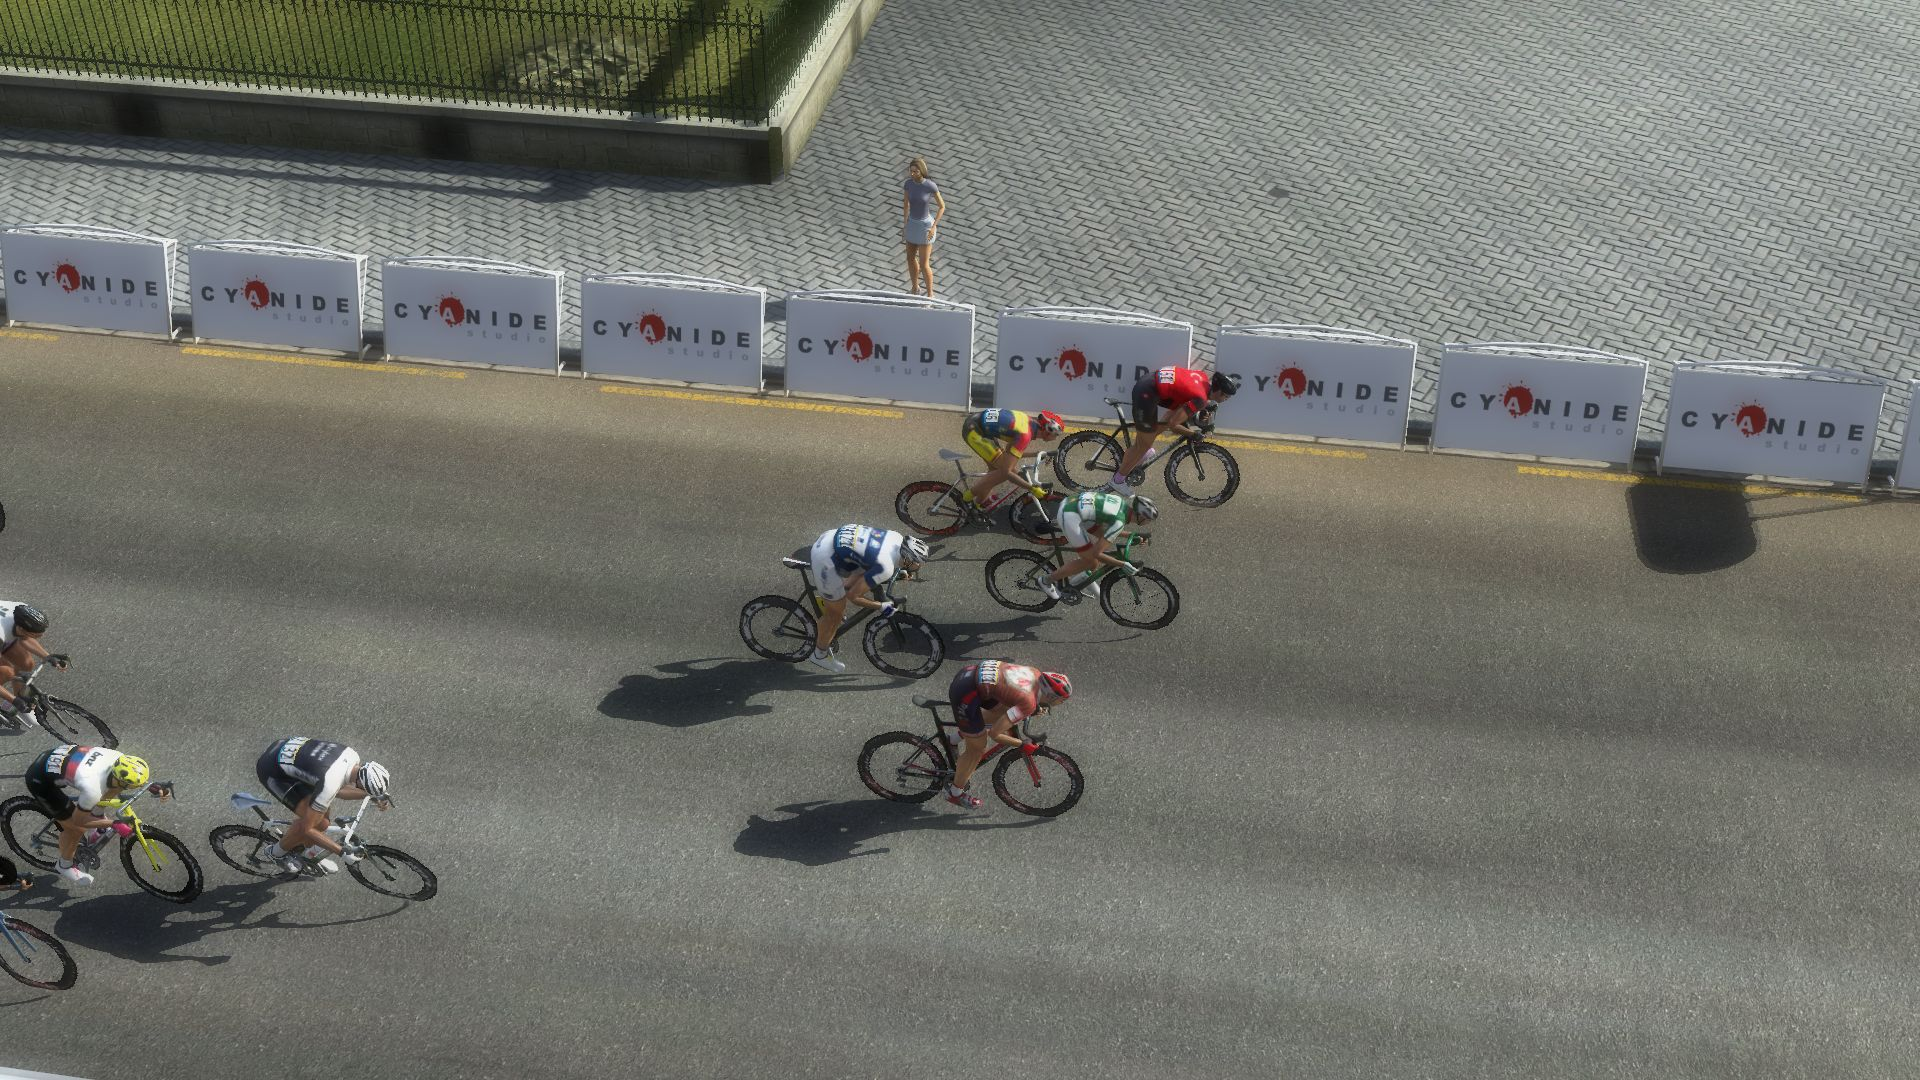 pcmdaily.com/images/mg/2019/Races/C2HC/Eritrea/TOES1%2019.jpg